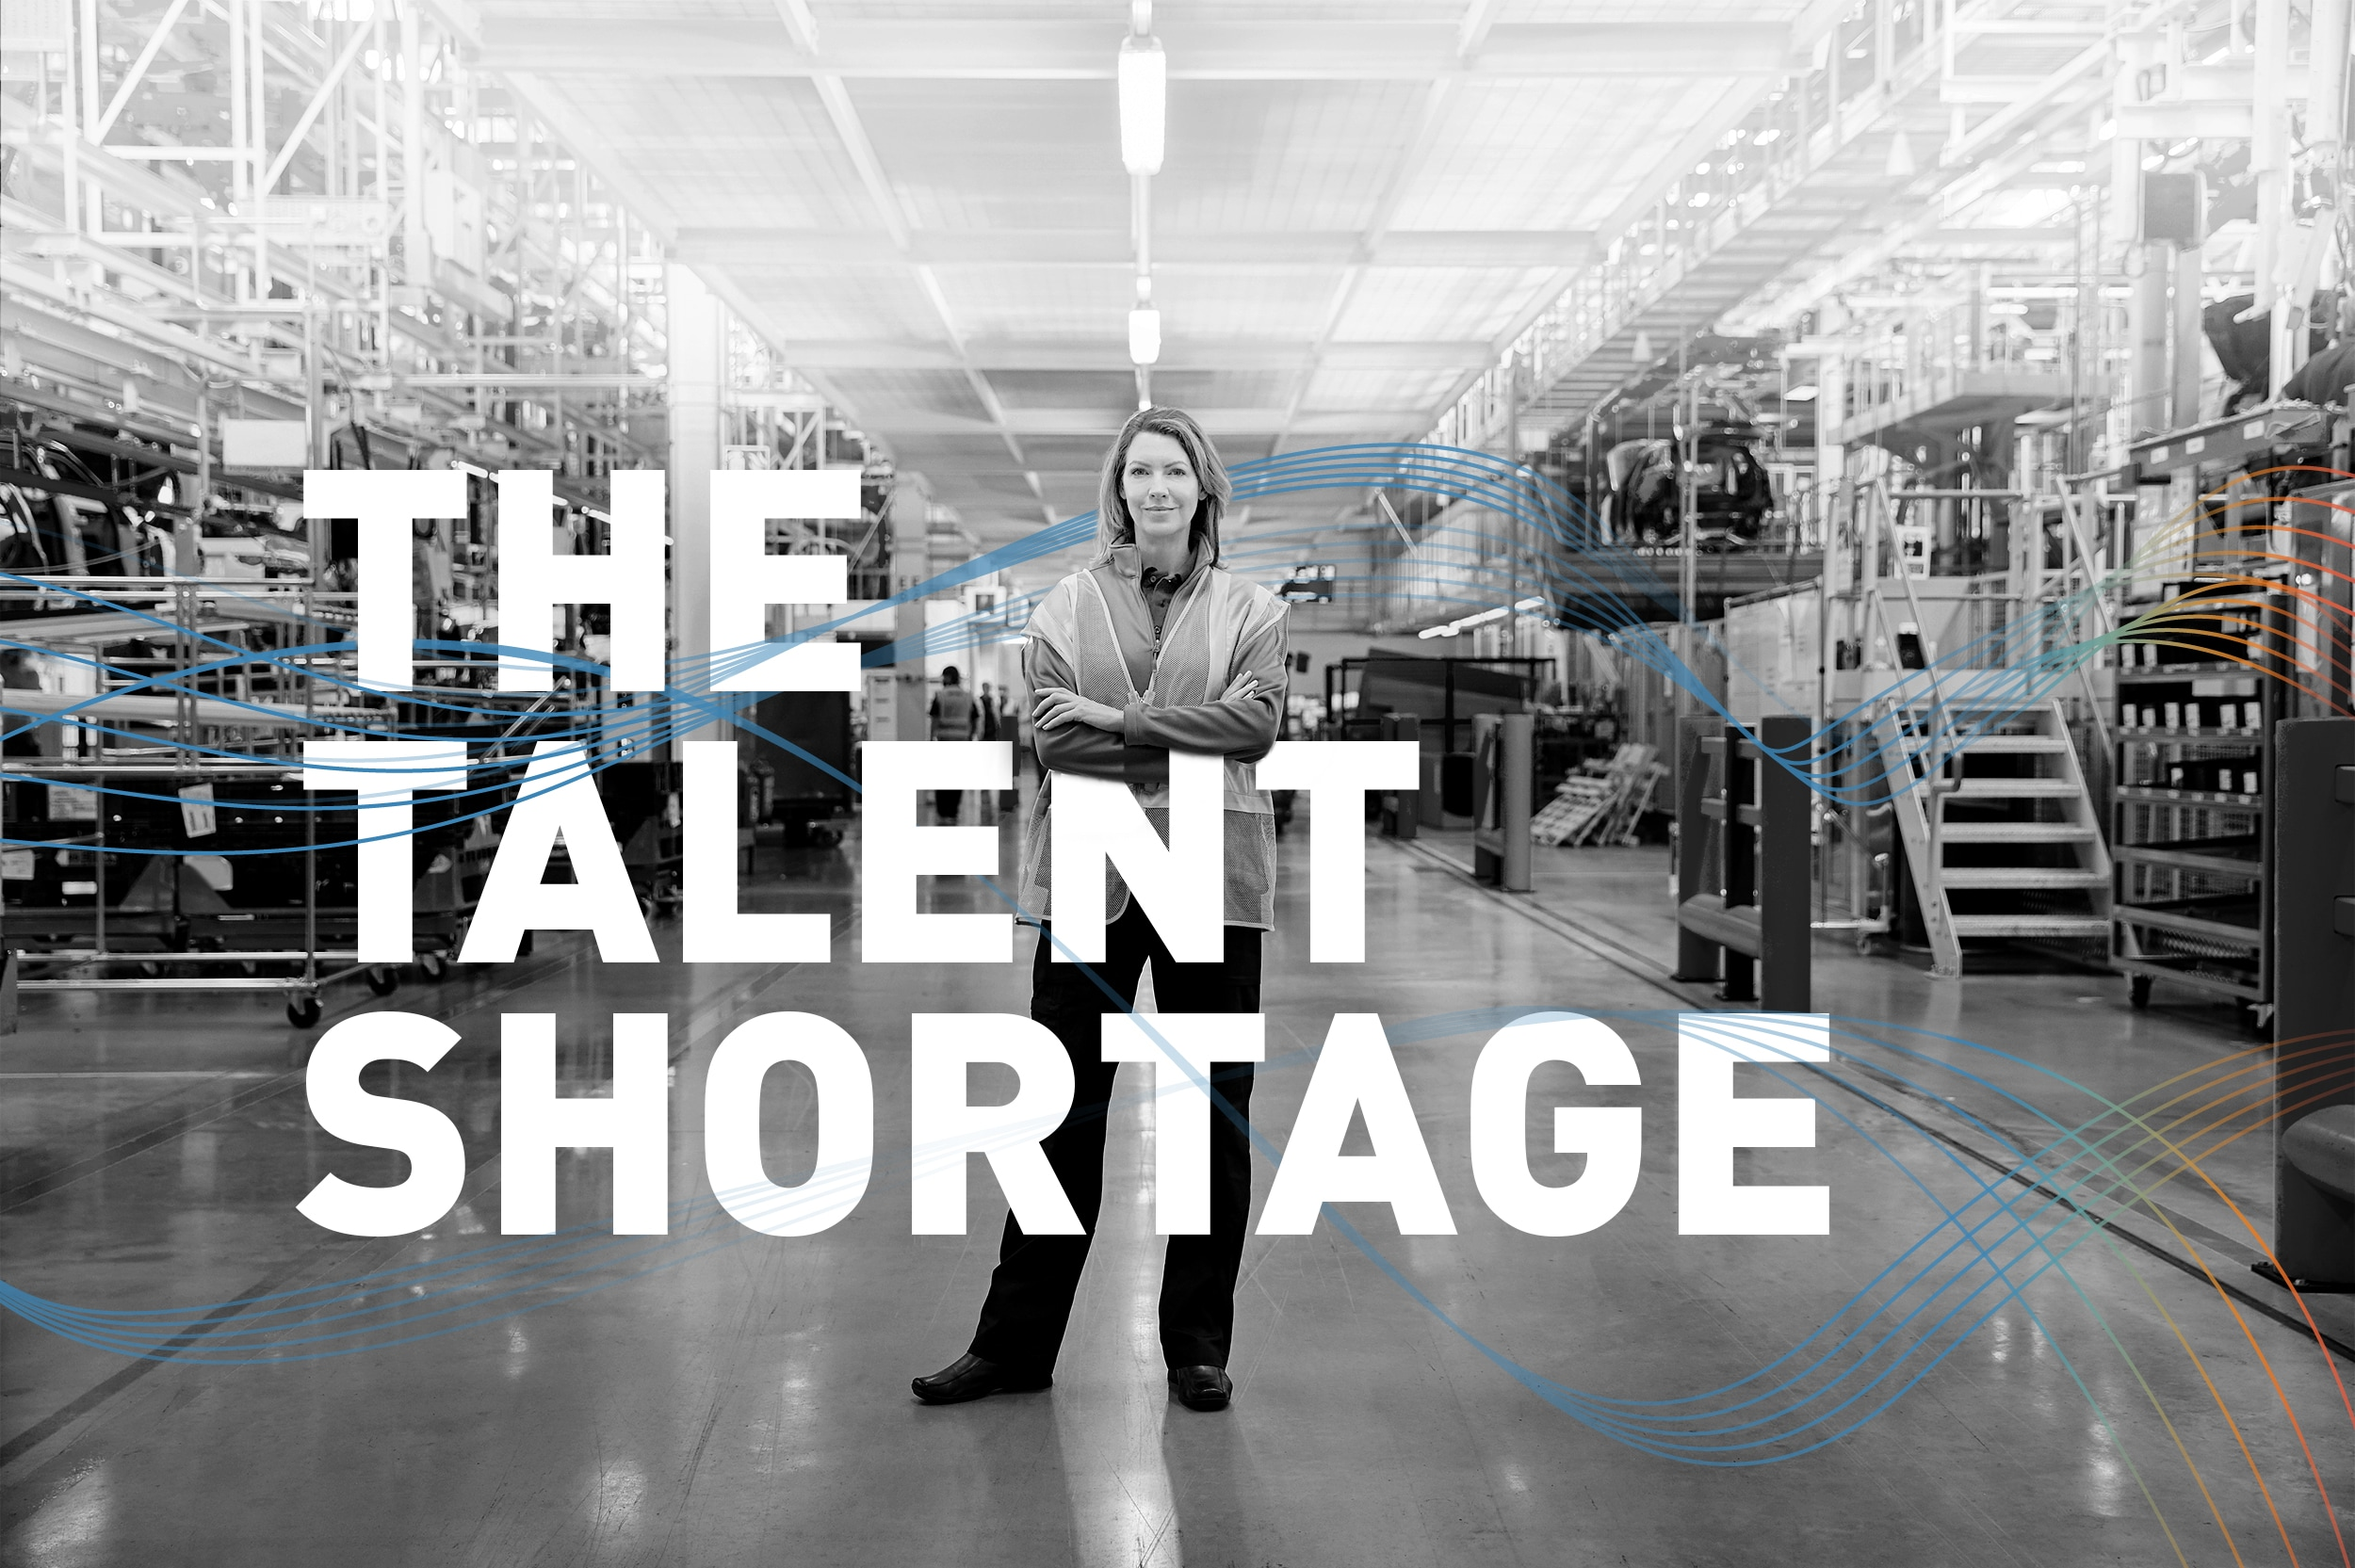 The Talent Shortage - Women standing with crossed arms in a manufacturing setting